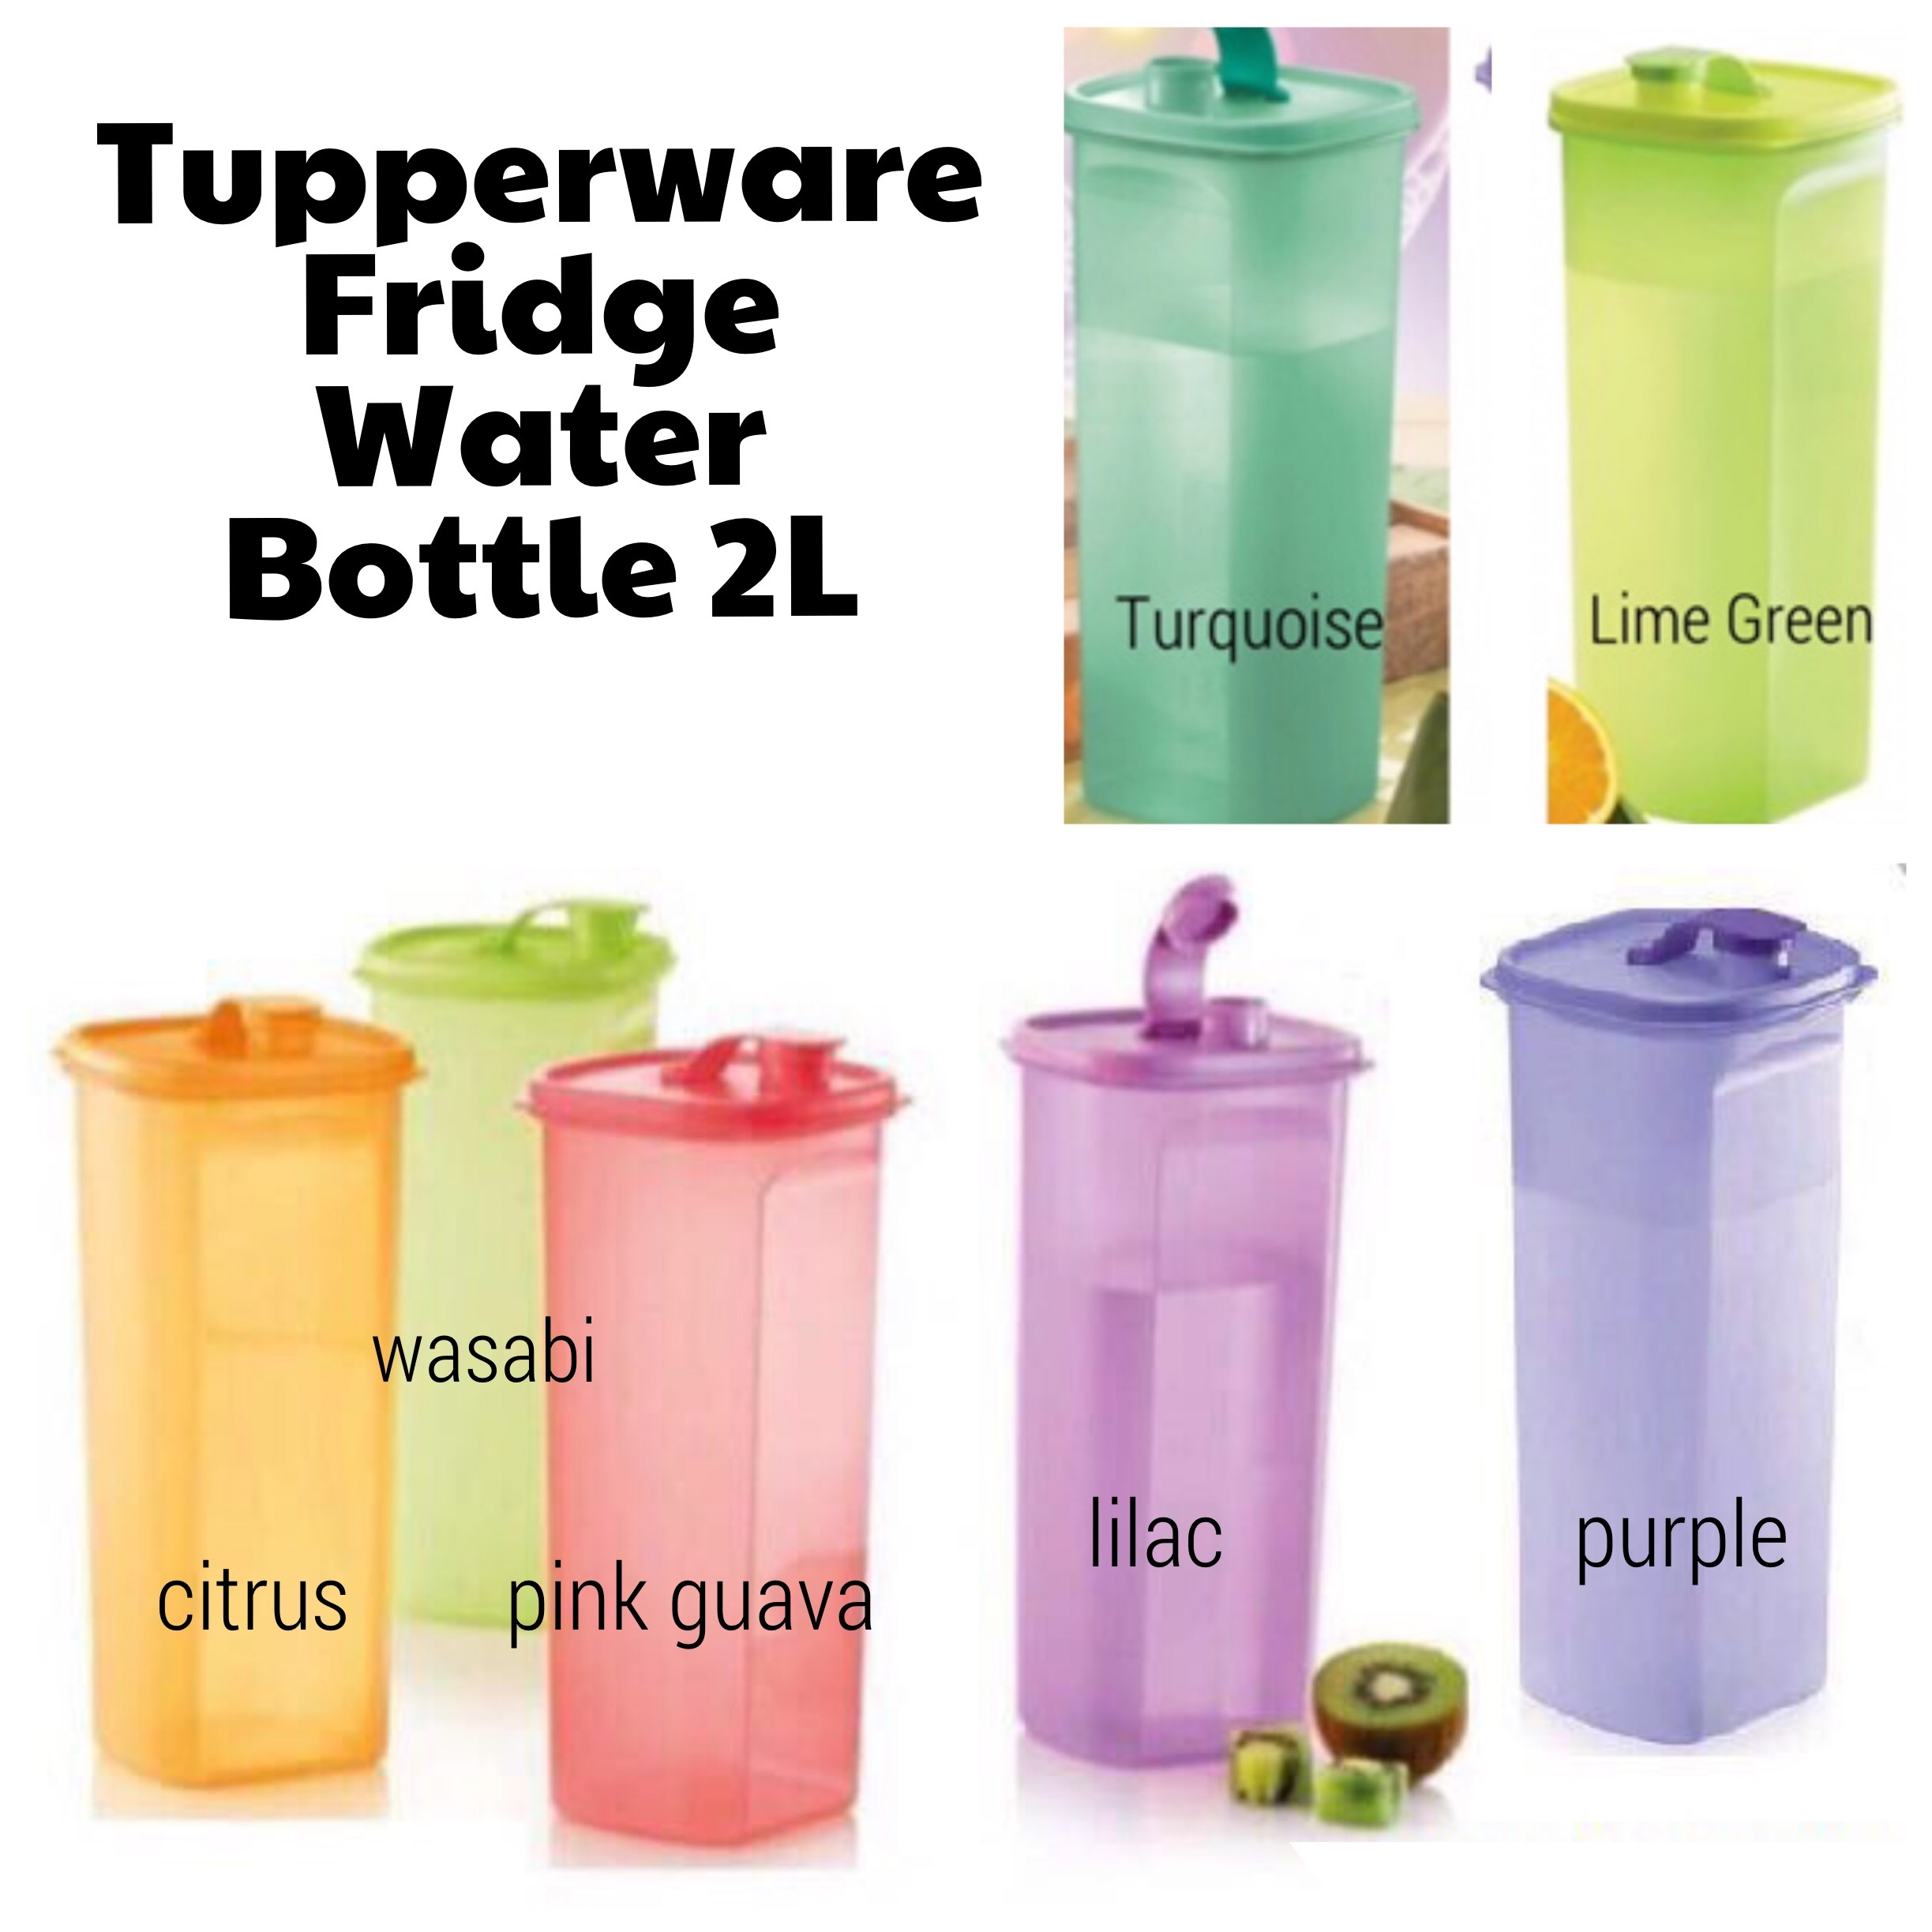 Tupperware Fridge Water Bottle 2 0l With Free Qxpress Delivery